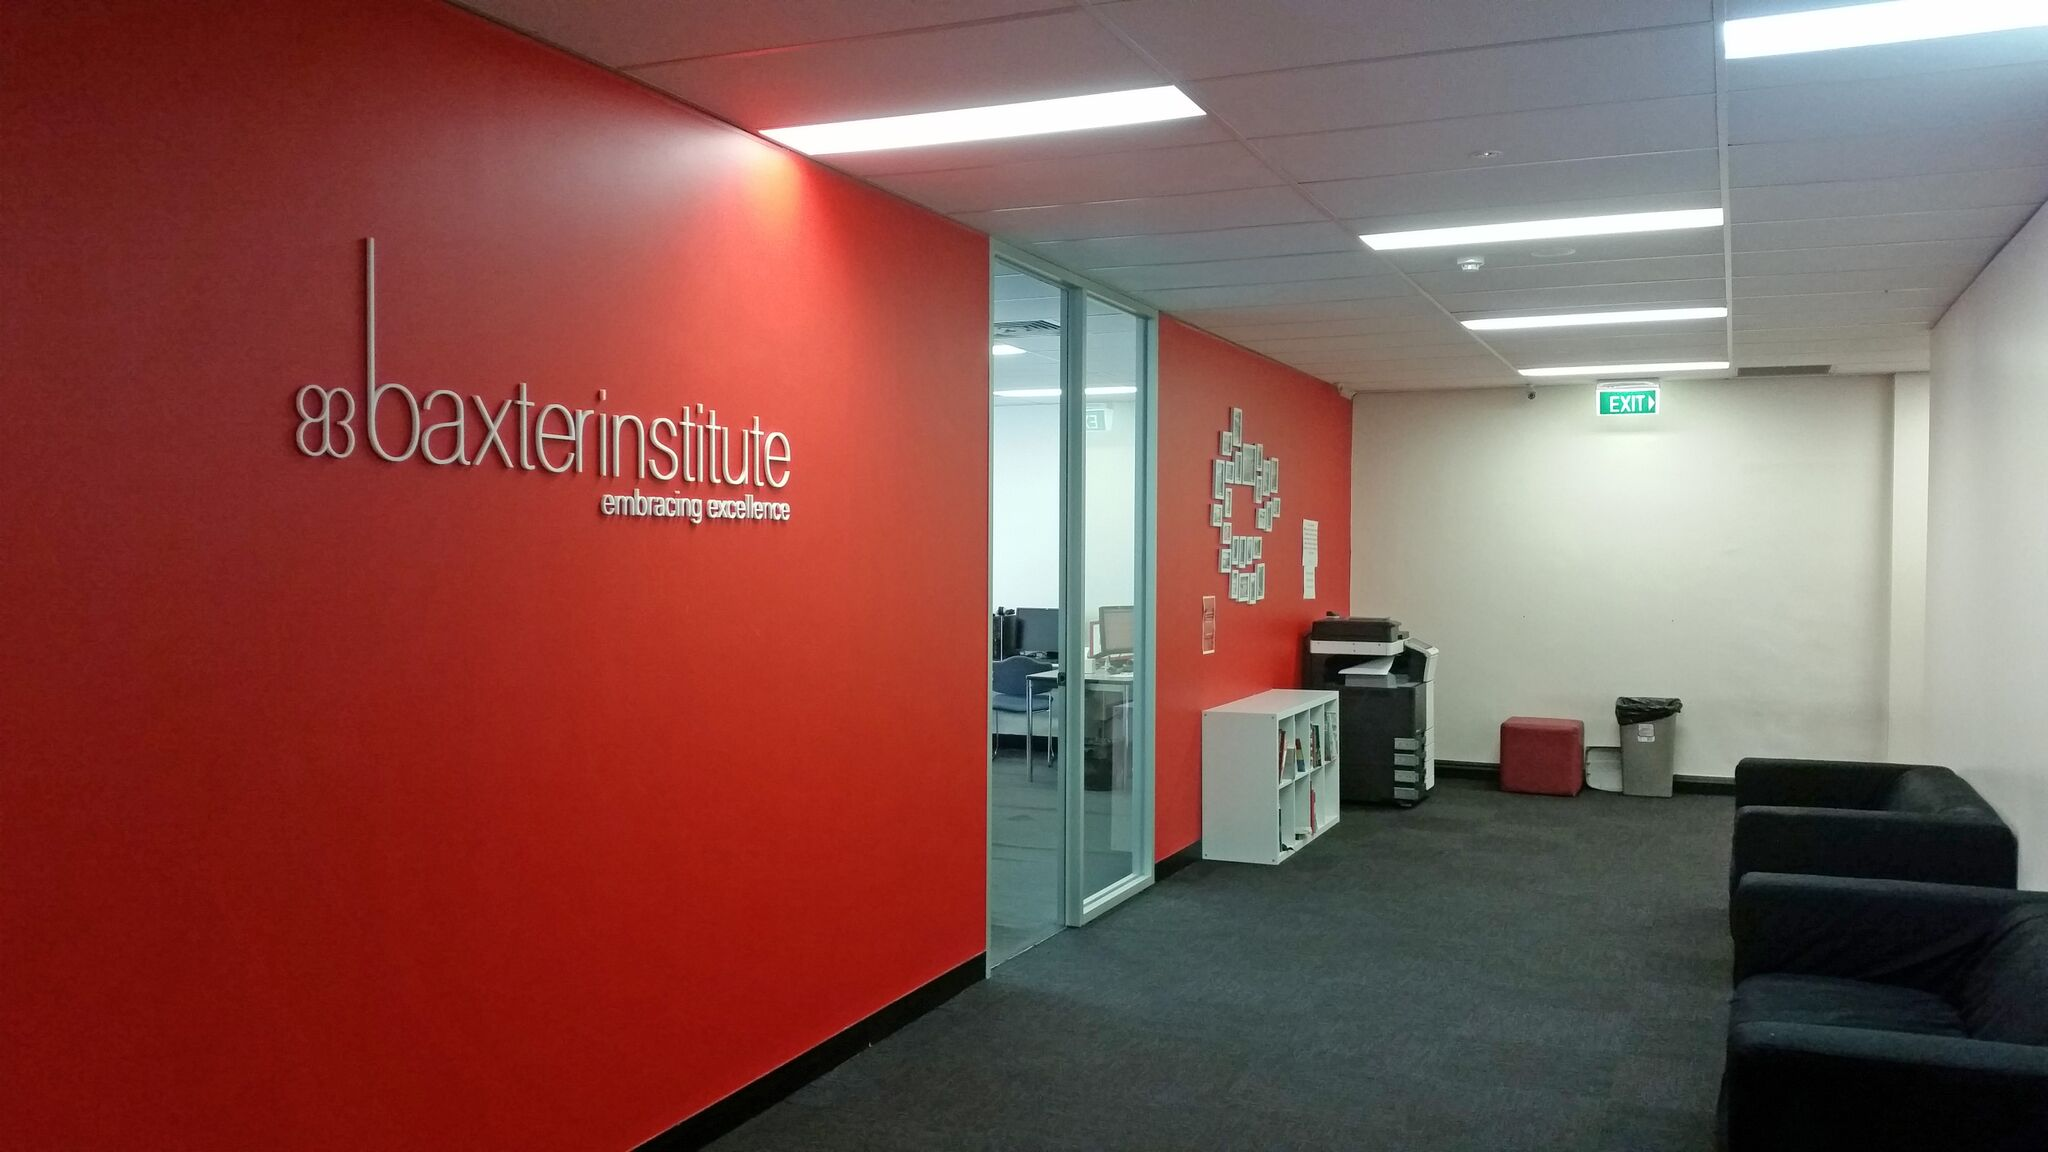 Baxter Institute – Melbourne